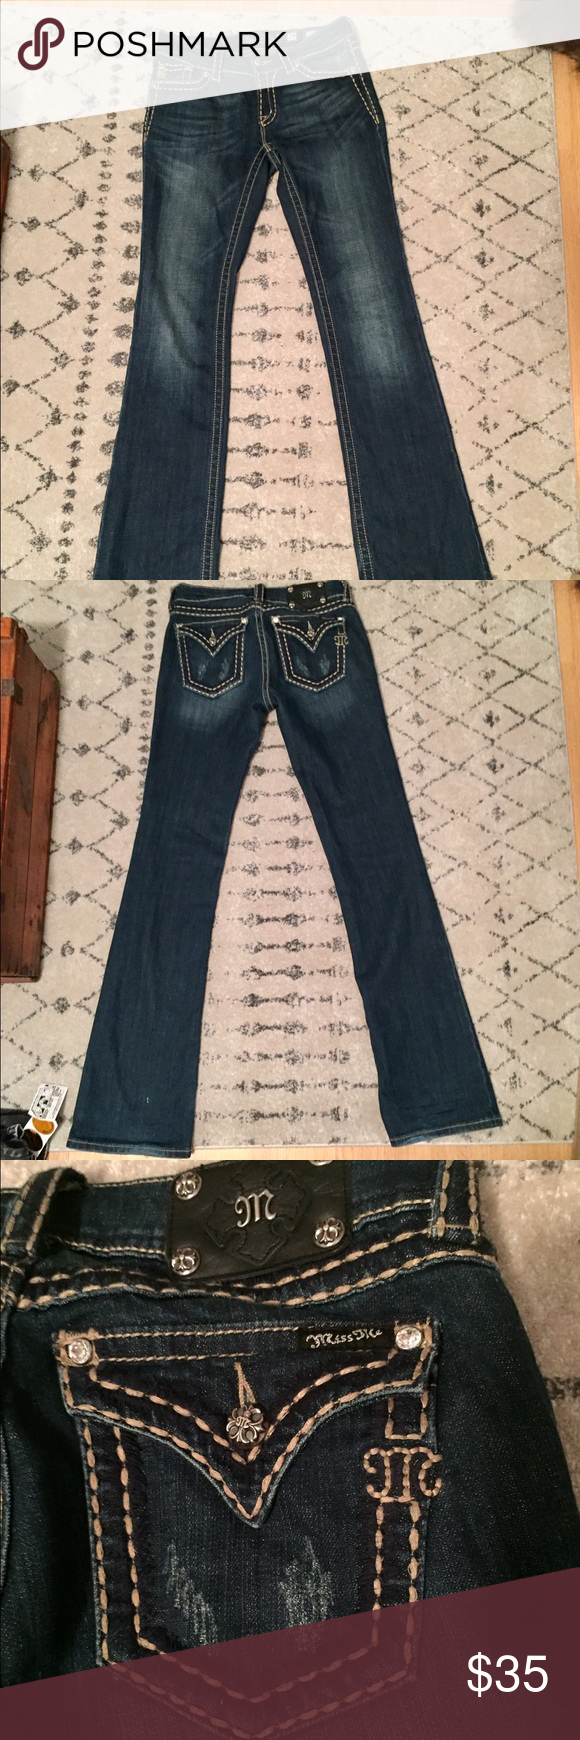 Miss Me dark wash boot cut jeans Worn twice, perfect condition! Miss Me Jeans Boot Cut